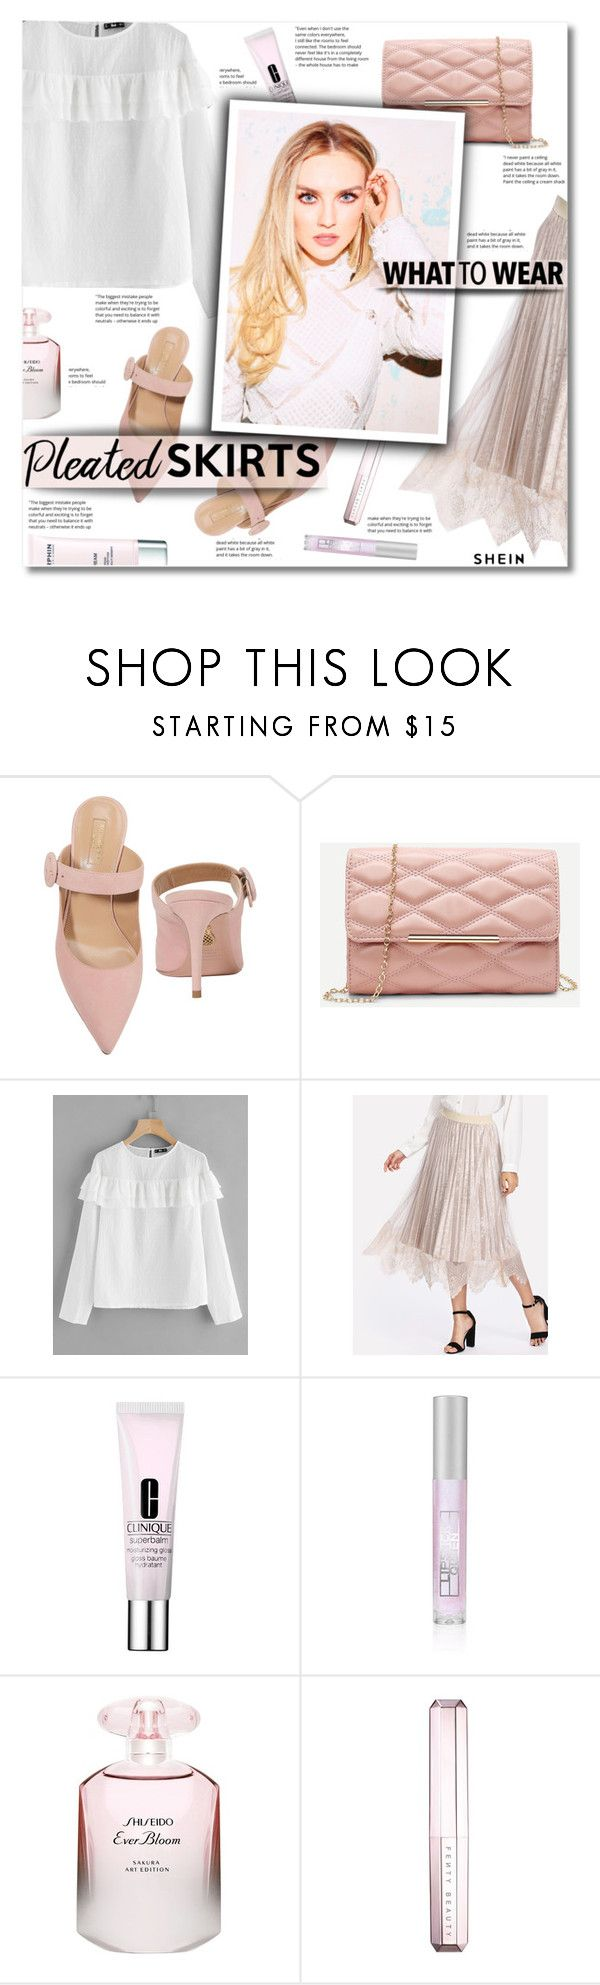 """Pleated skirt"" by smajlovicelvira ❤ liked on Polyvore featuring Aquazzura, COVERGIRL, Clinique, Lipstick Queen, Shiseido, Sephora Collection and Darphin"